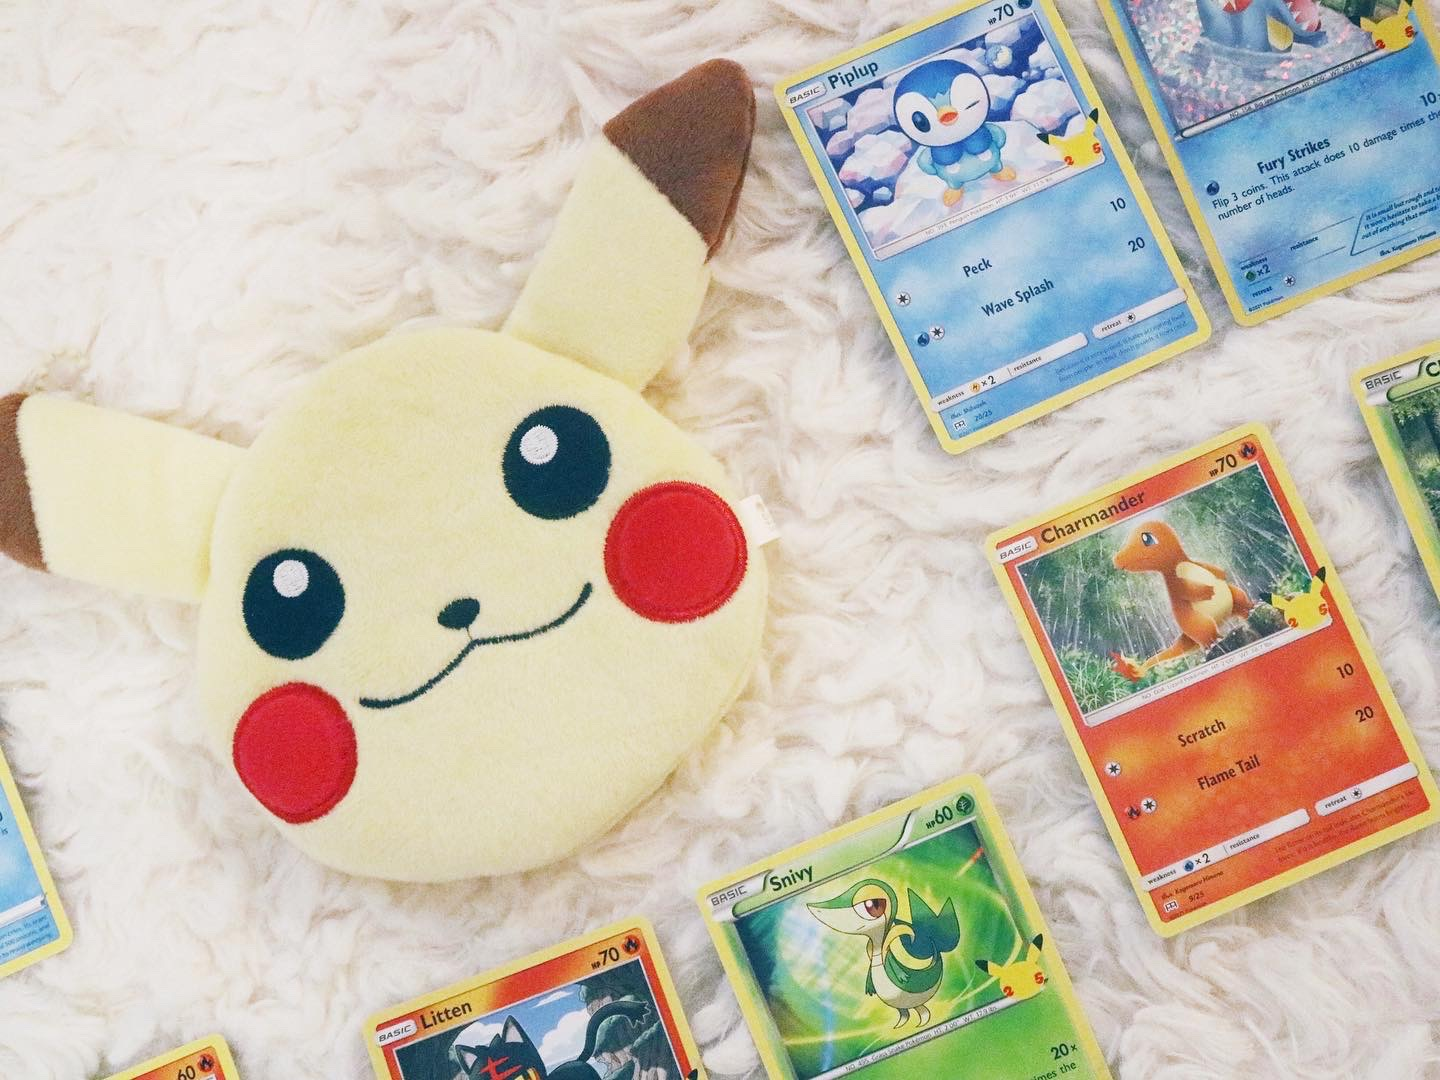 McDonald's Happy Meal Pokemon Cards